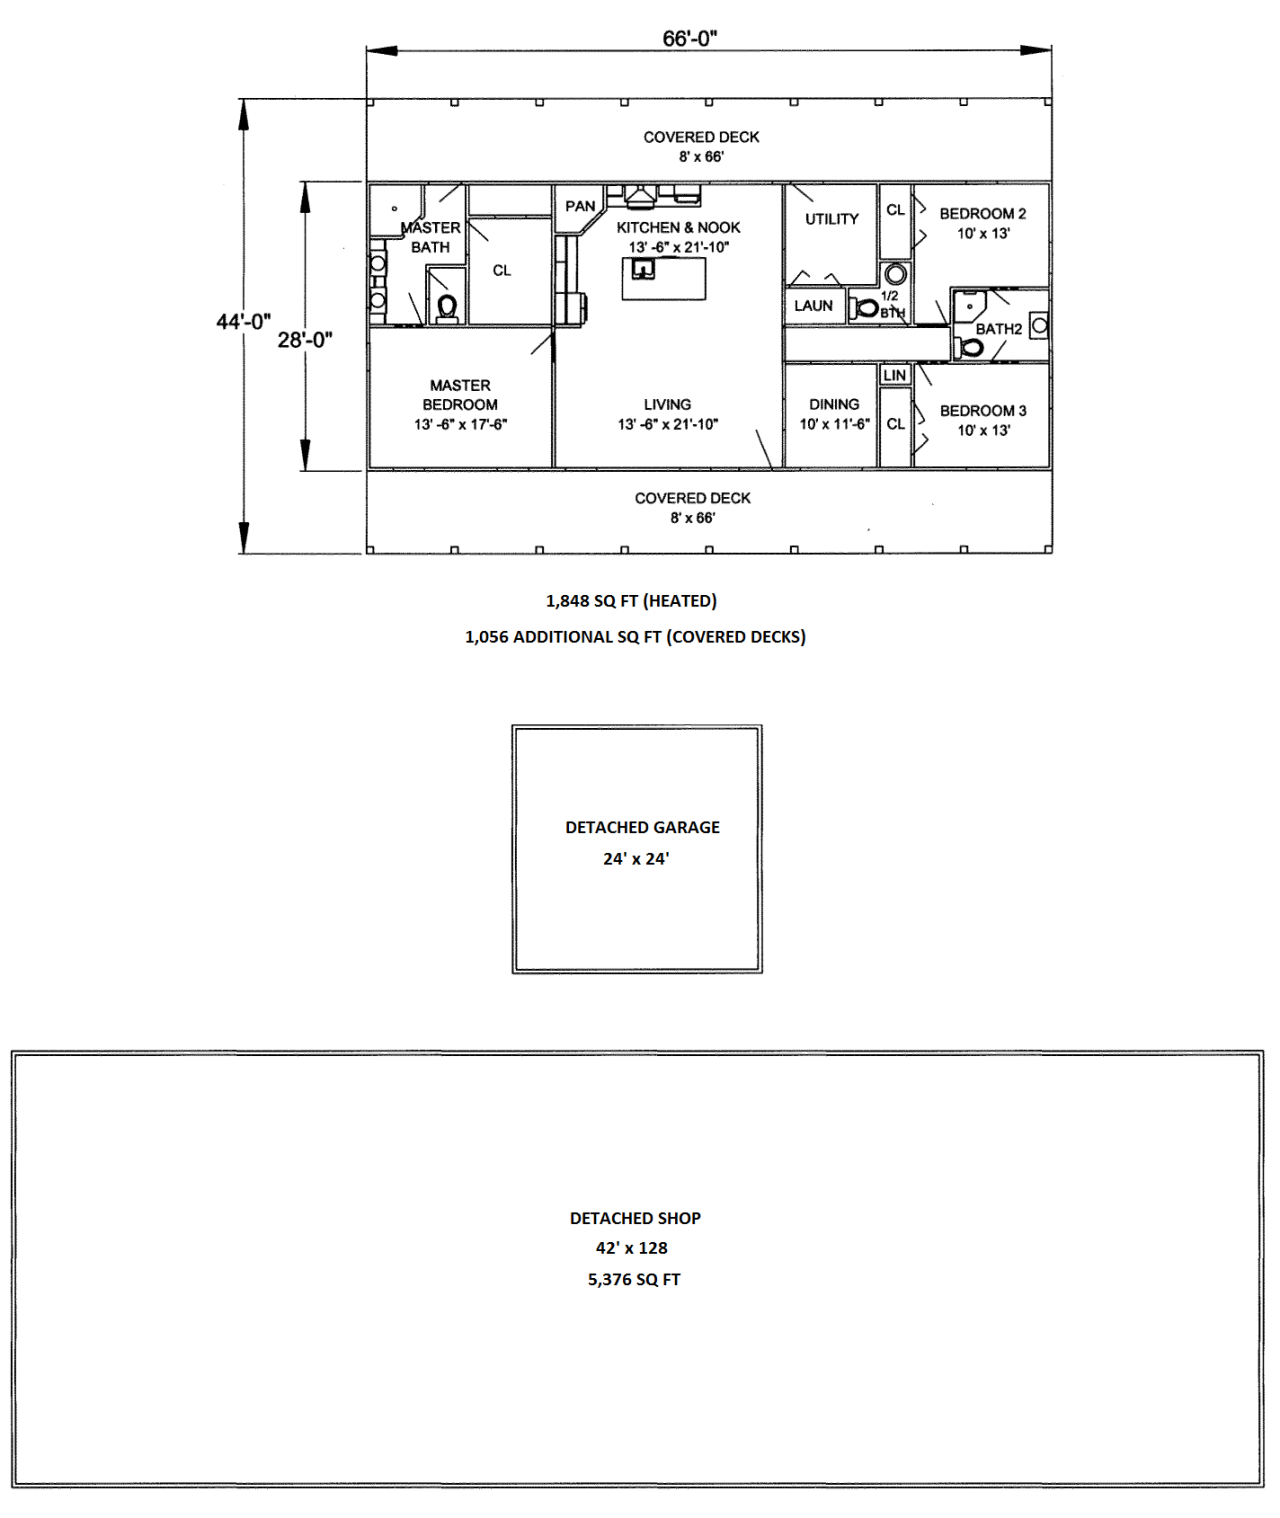 349 Fort Lamar - Floor Plan (Vertical Image)